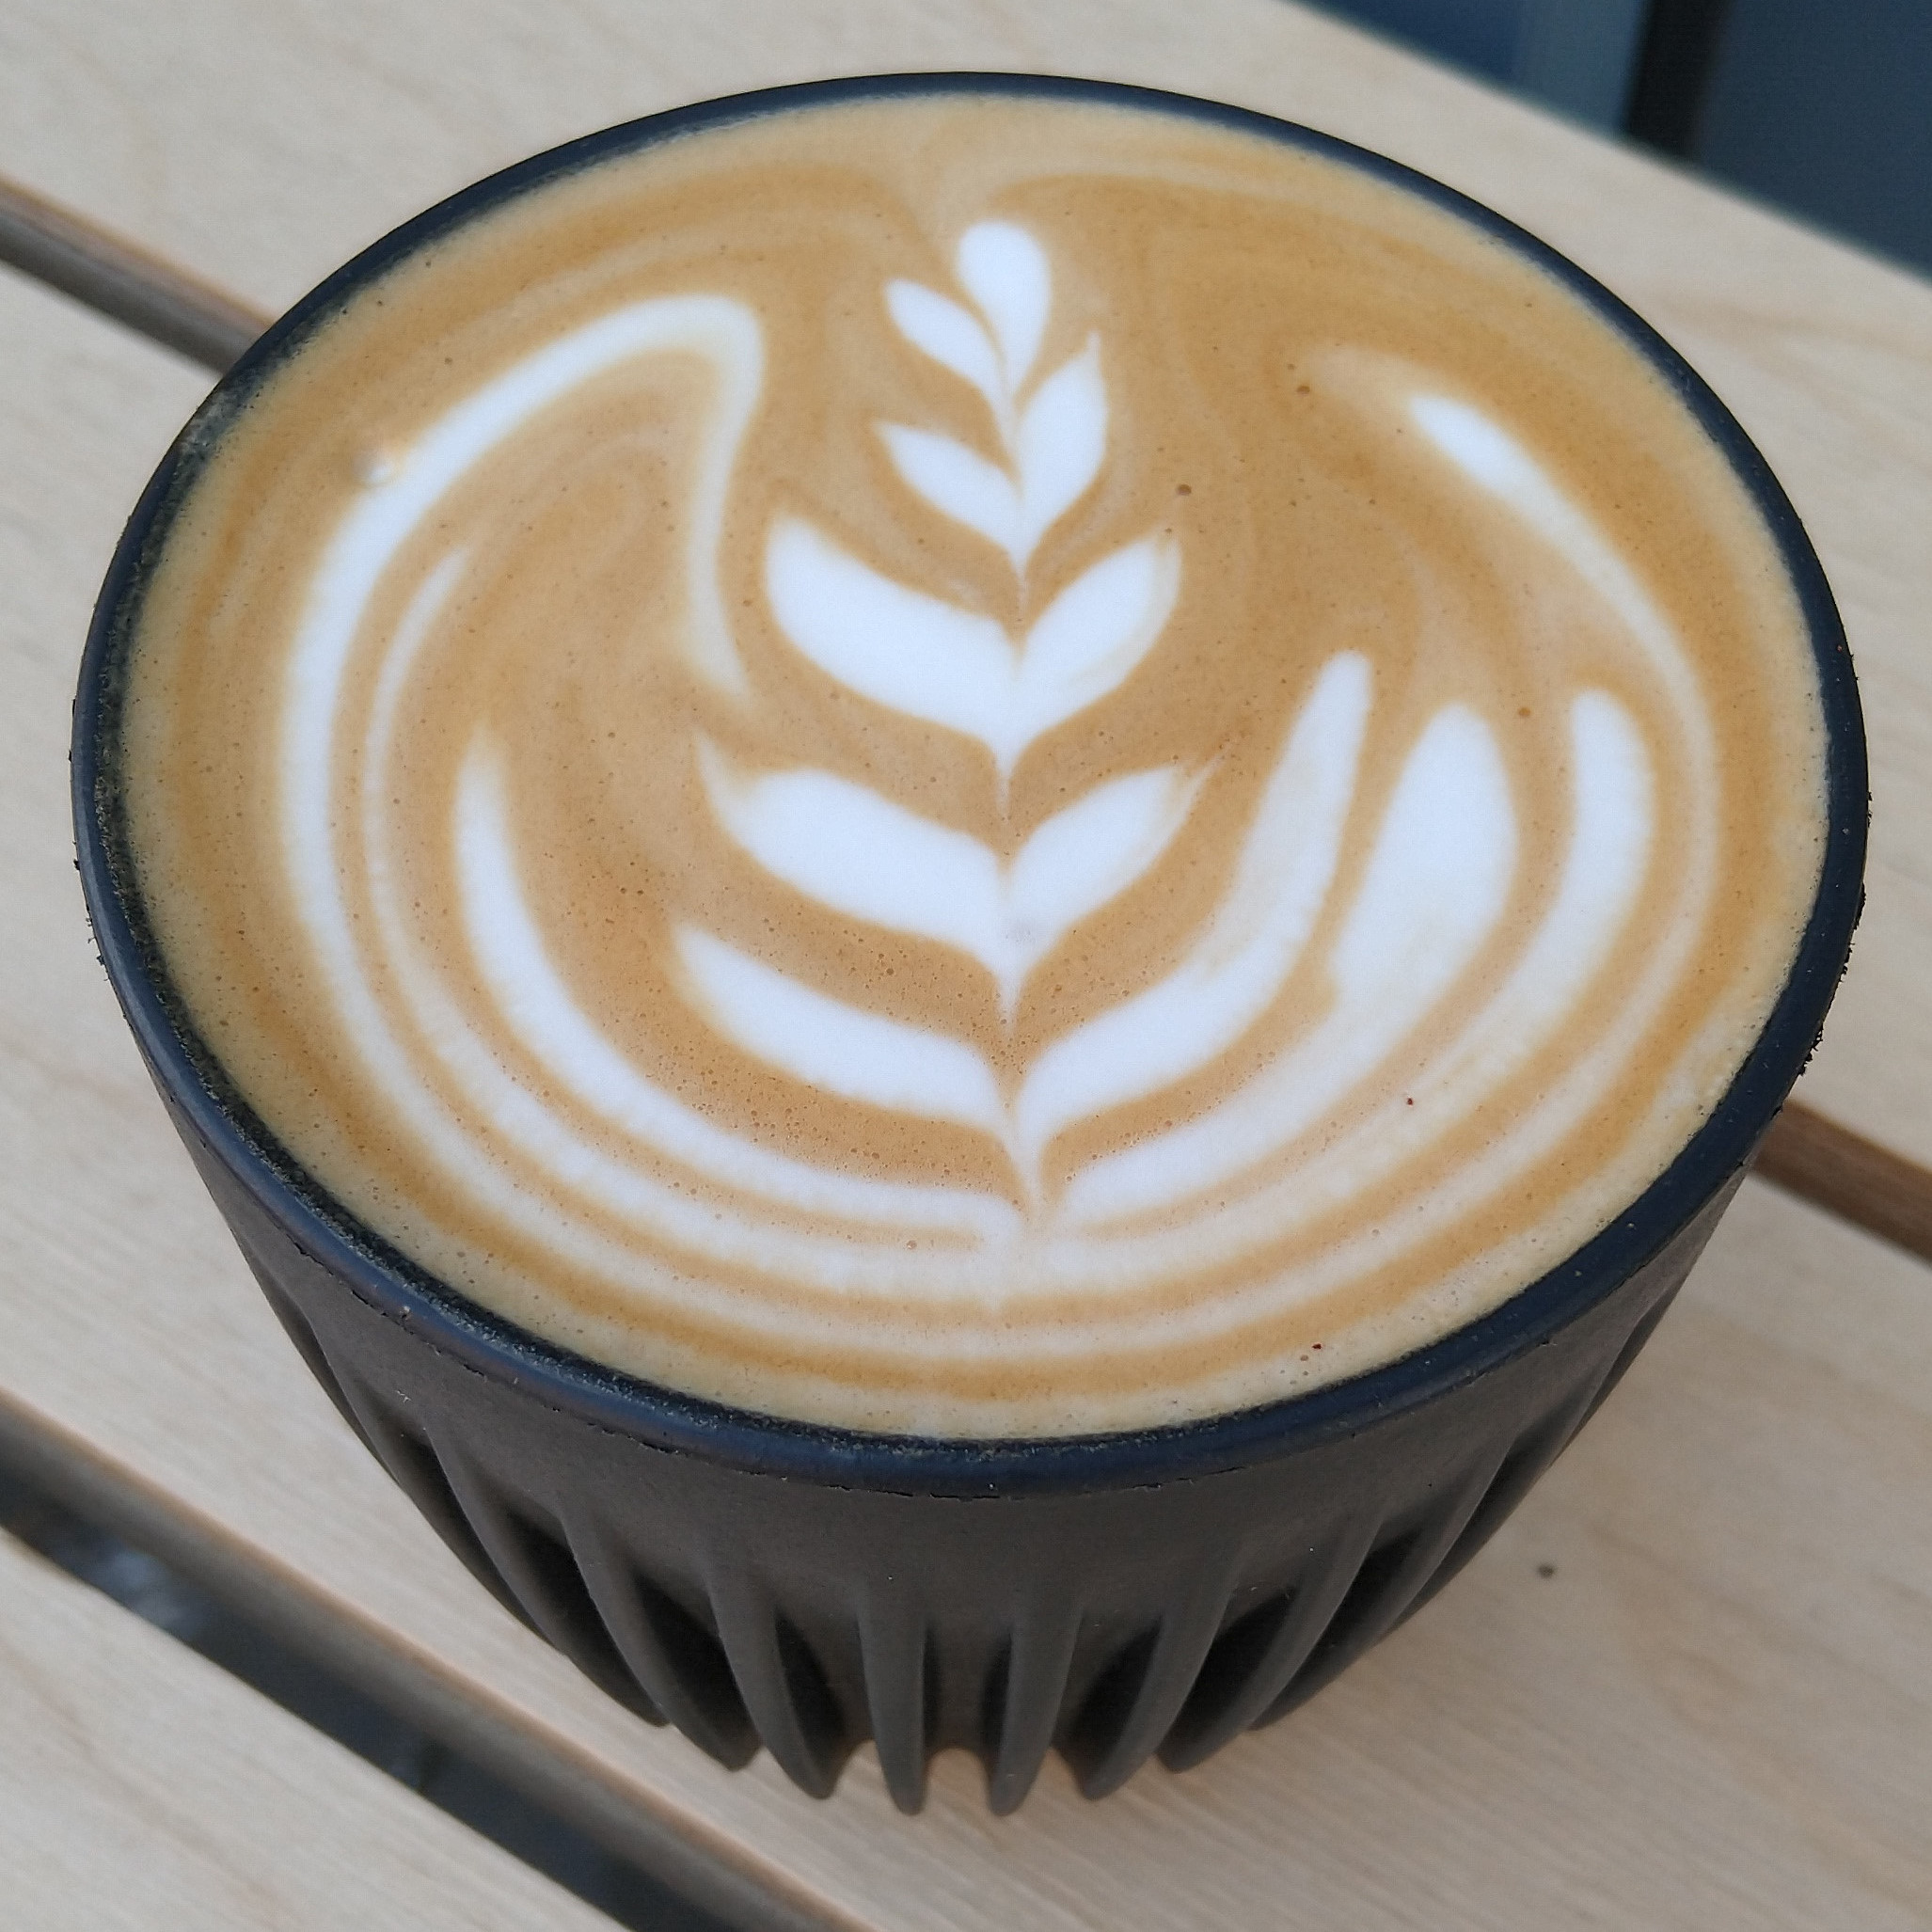 A flat white, made with the Dark Horse blend from Quarter Horse, and served in my HuskeeCup at Hatch in Birmingham.